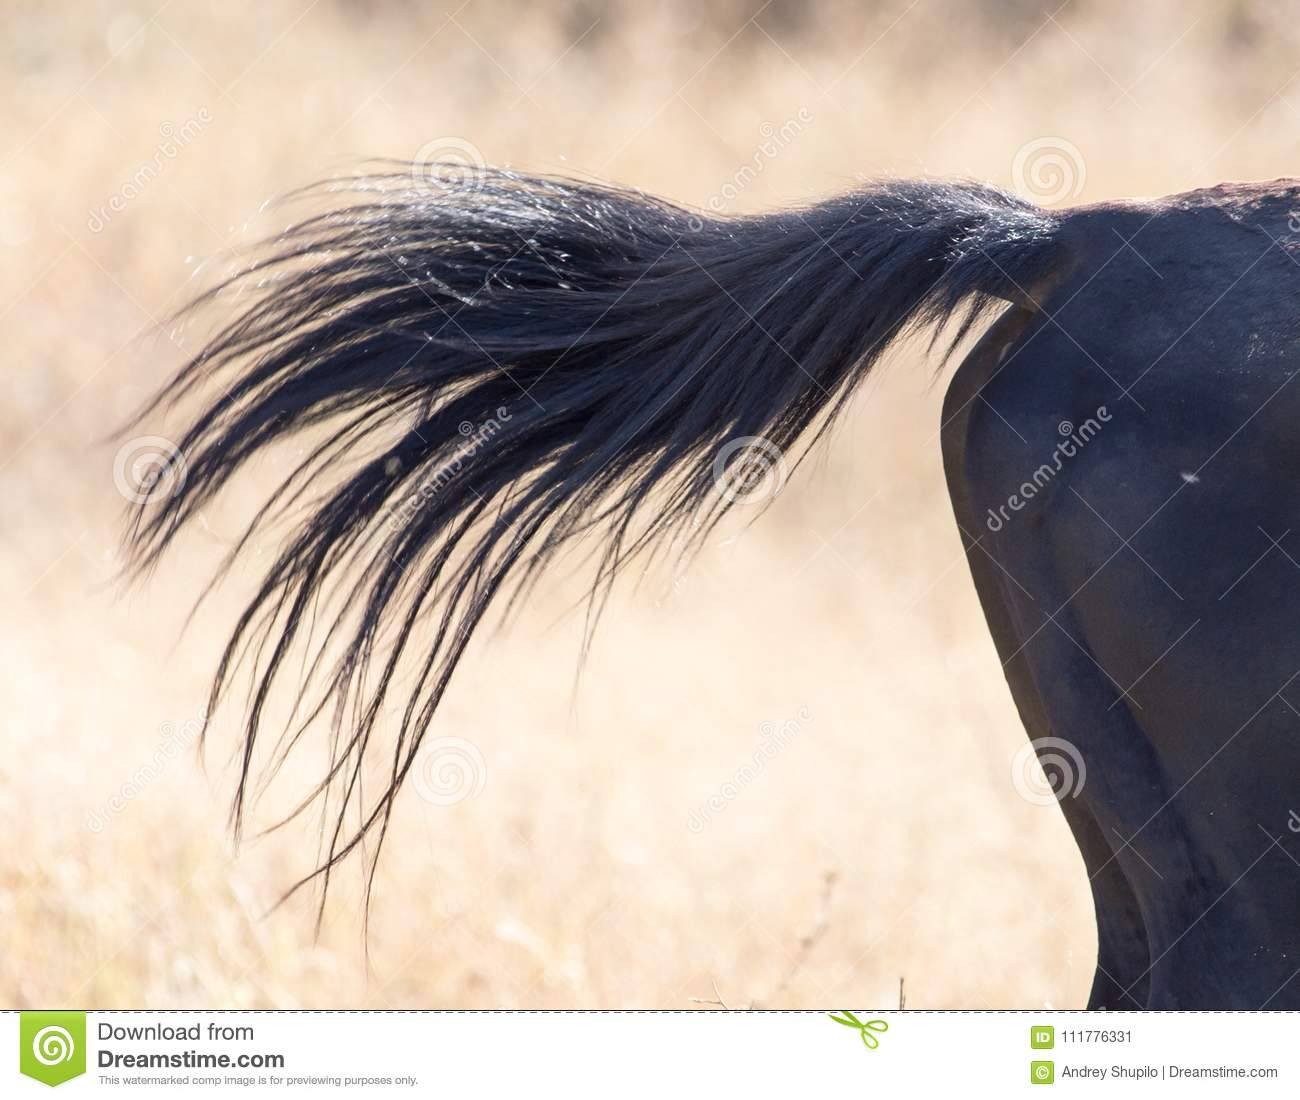 Tail of a horse on nature